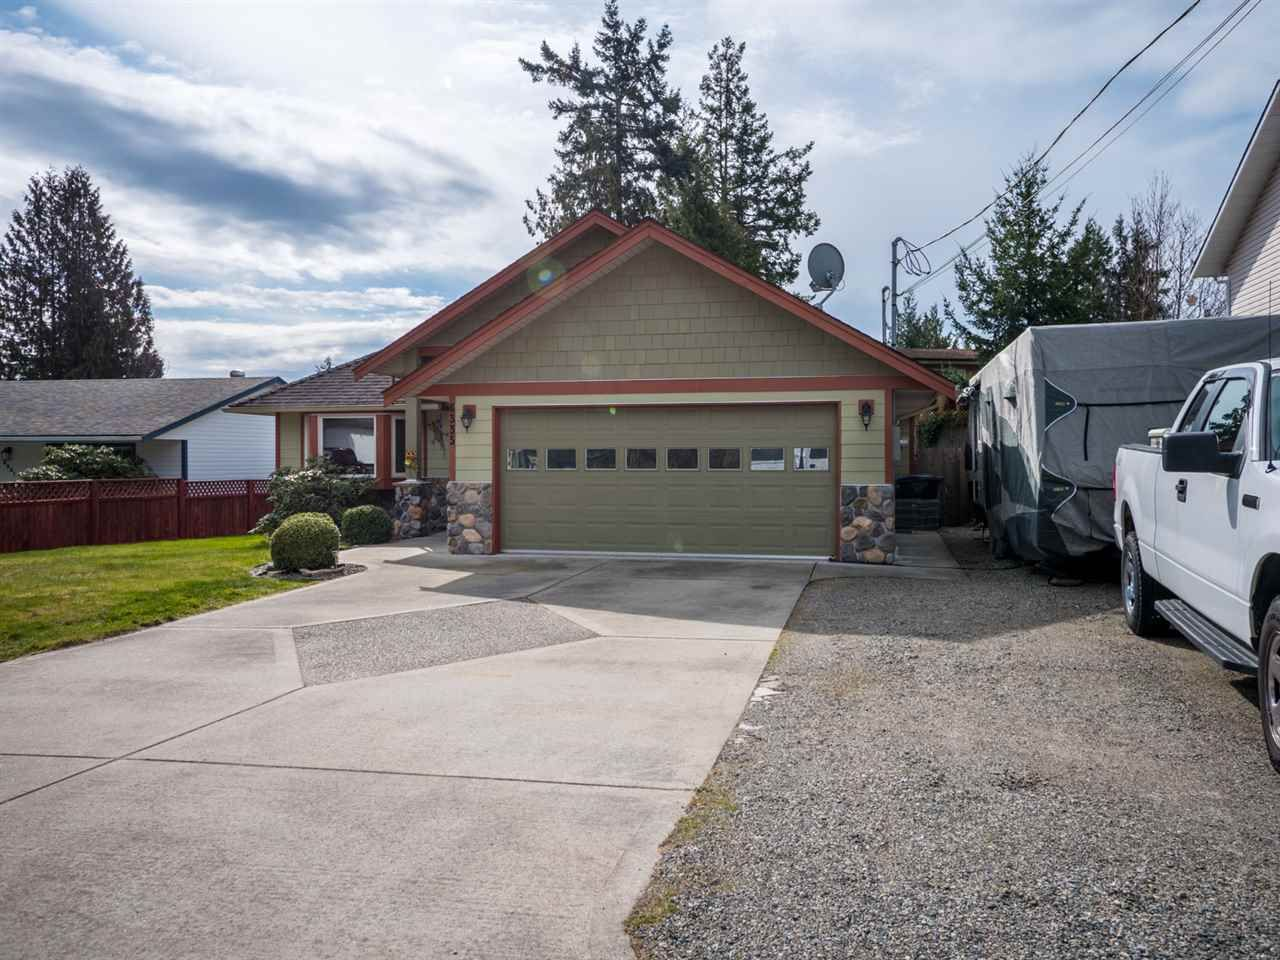 Photo 2: Photos: 6335 PICADILLY Place in Sechelt: Sechelt District House for sale (Sunshine Coast)  : MLS®# R2248834